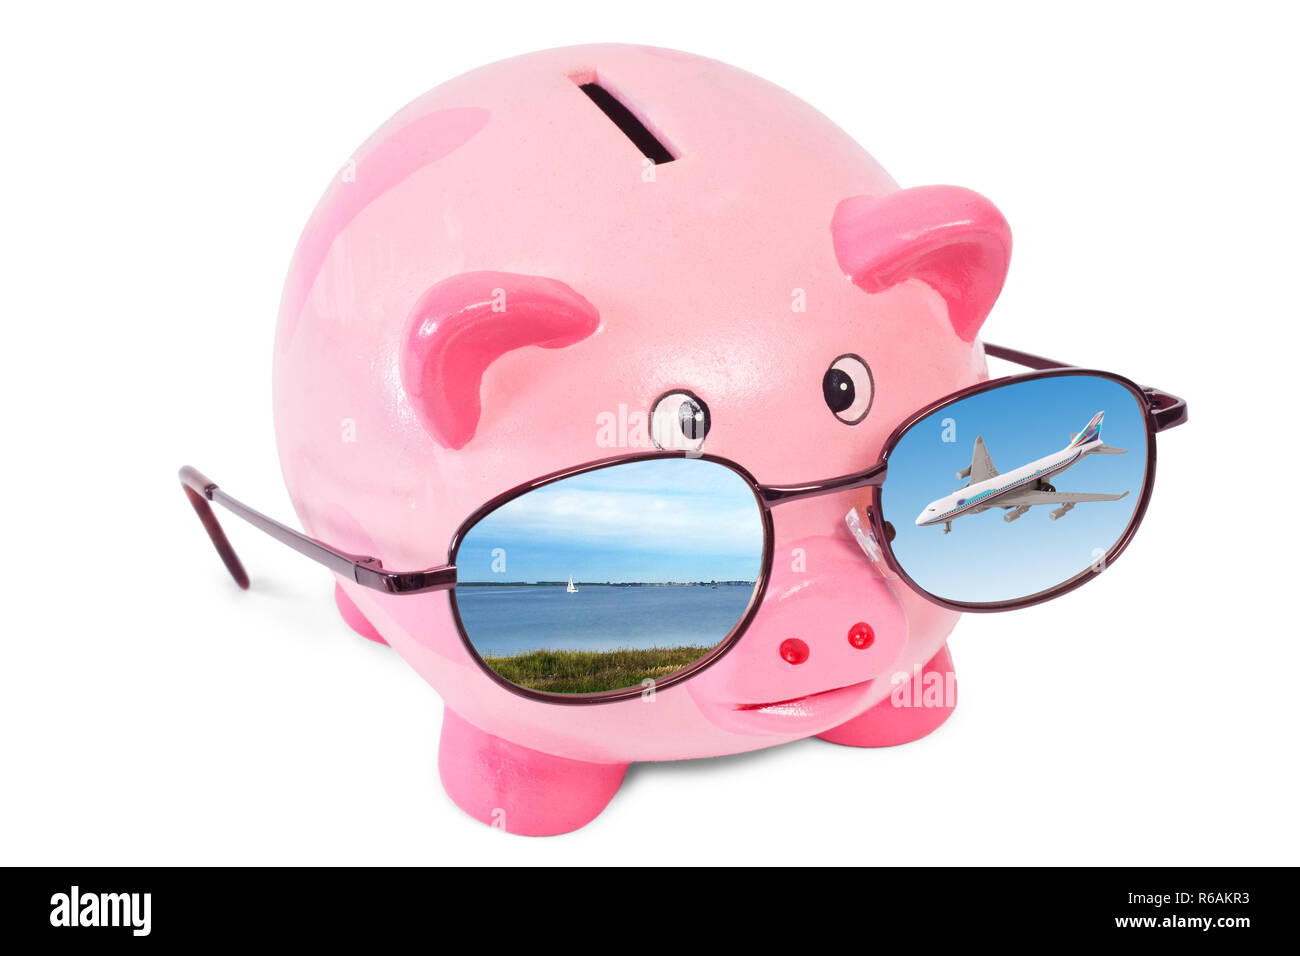 Pink Piggy Bank With Sunglasses Isolated On White Background - Stock Image